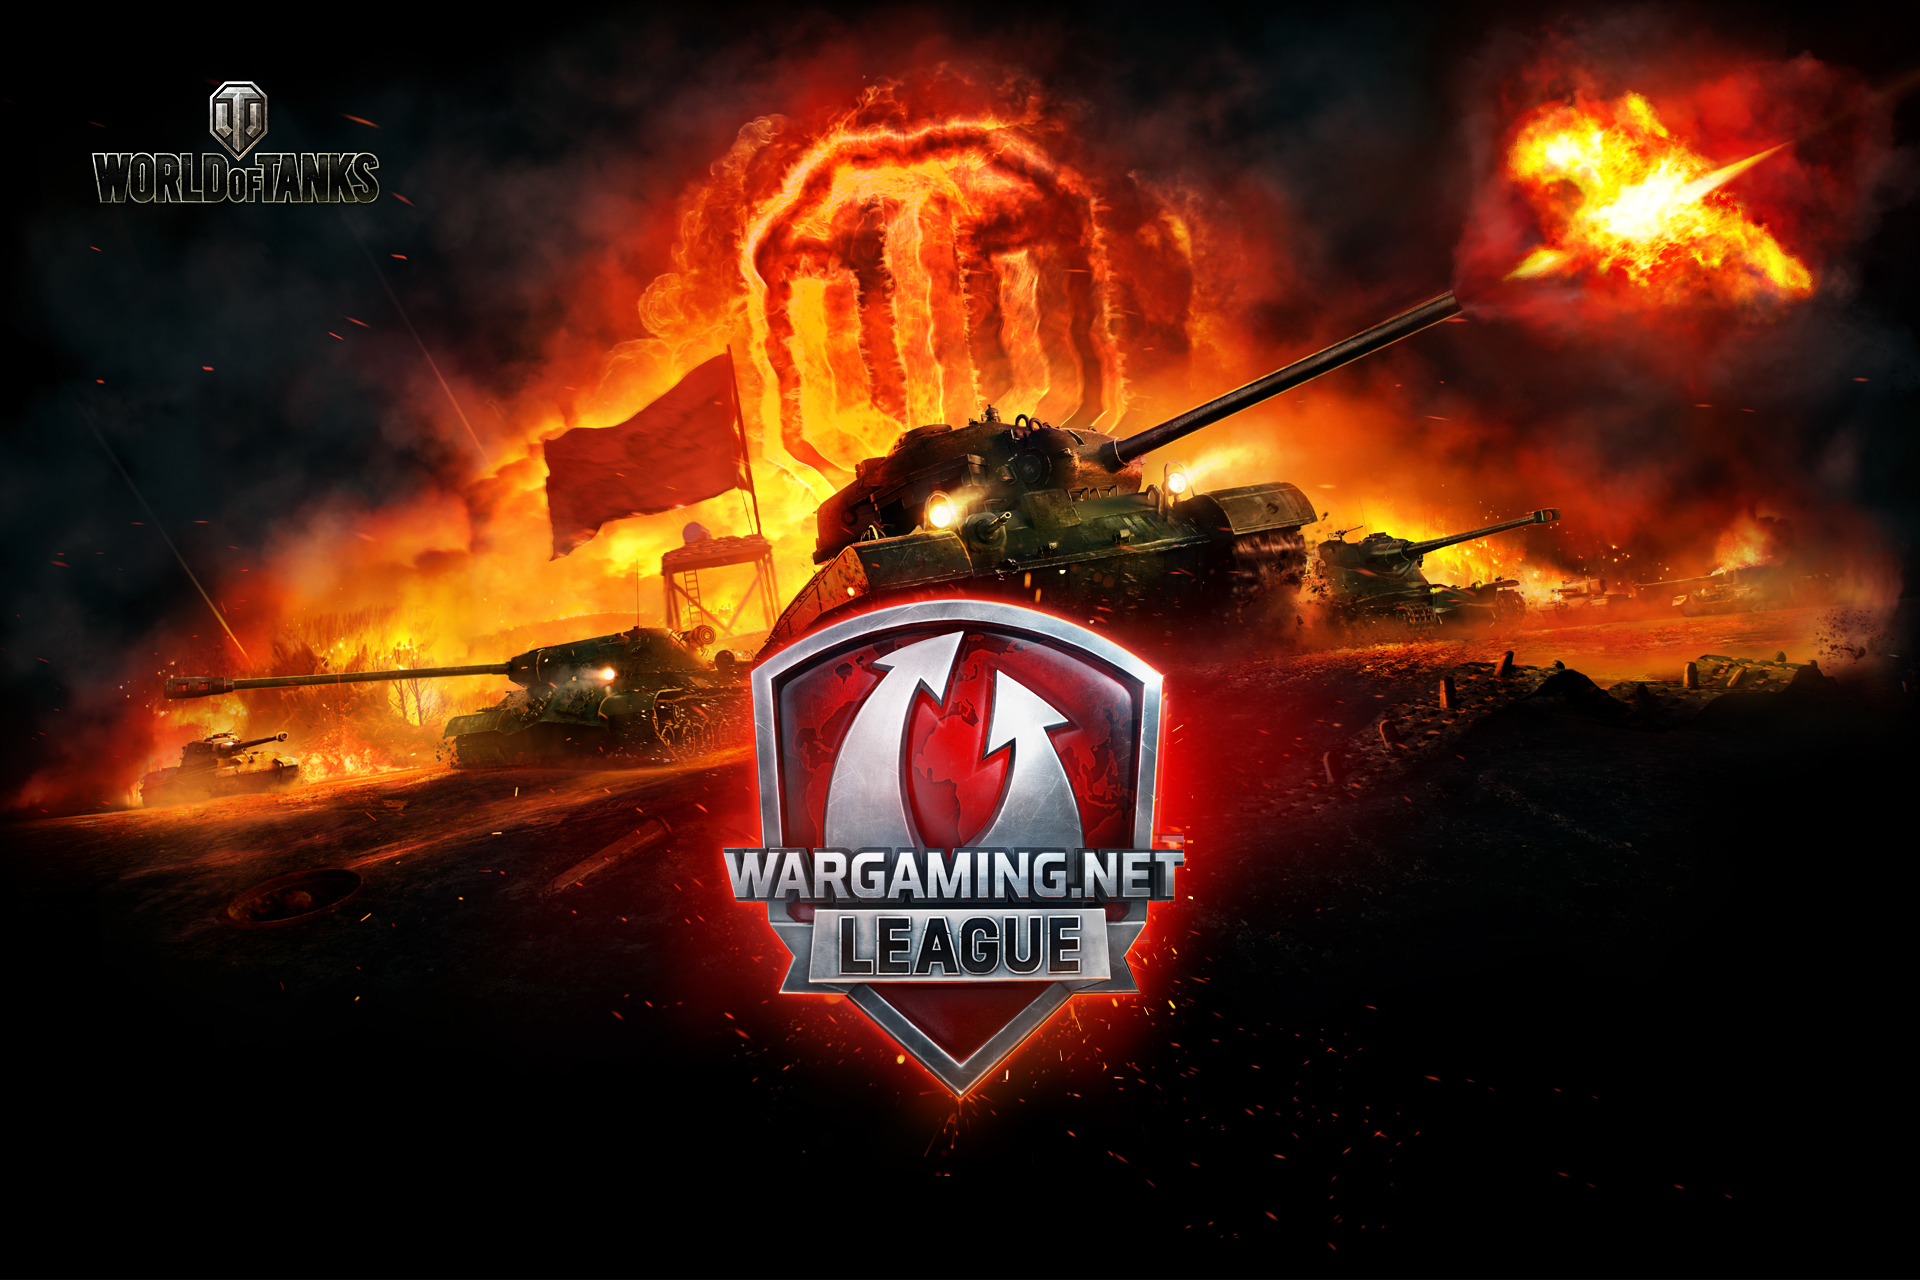 Wargaming.Net League North America 2013 Season 1 неделя 1, день 1